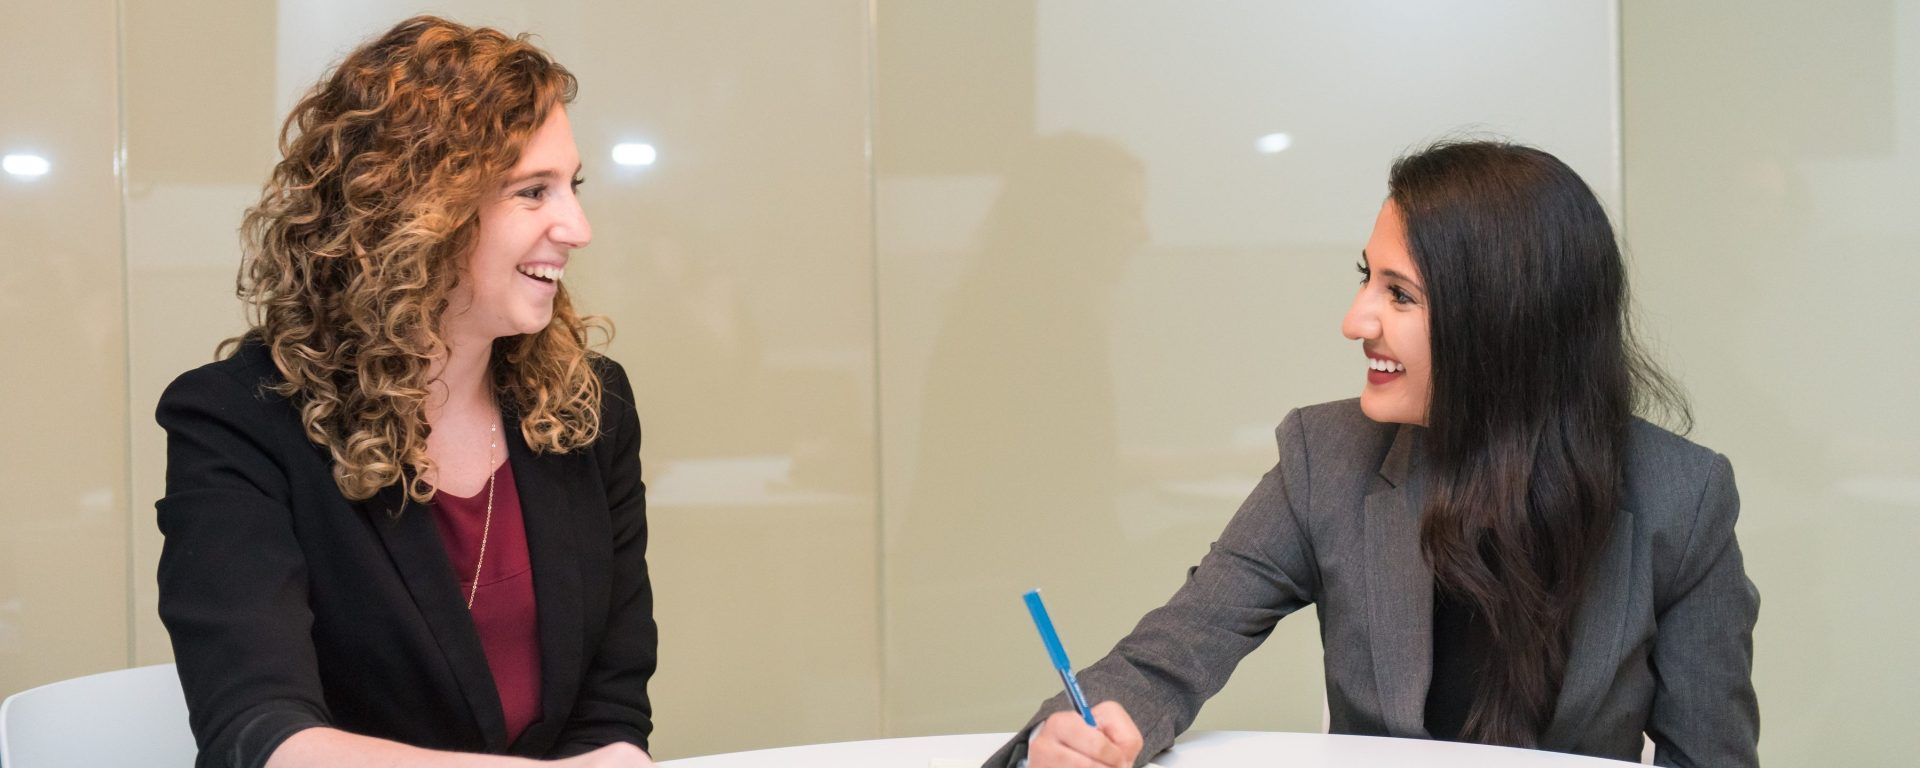 Two women in blazers sit at a small conference table, facing each other and smiling. One is writing on a pad of paper.